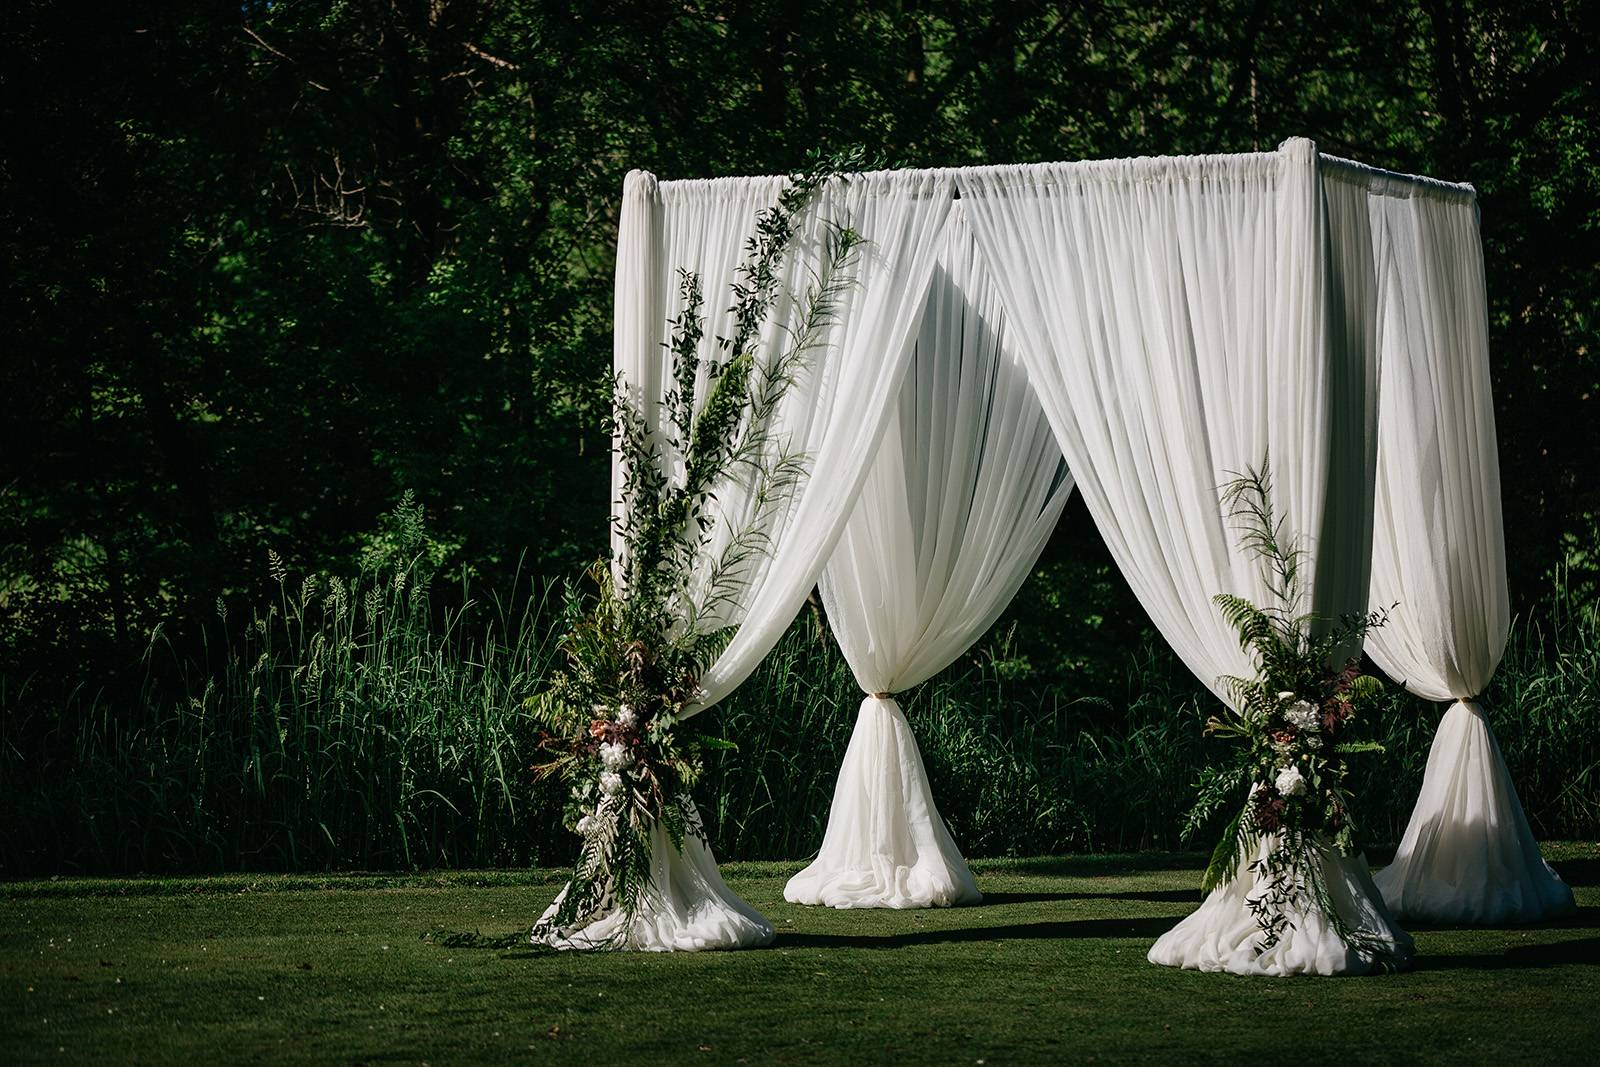 ceremony arch arbor canopy floral installation wedding decor white draping